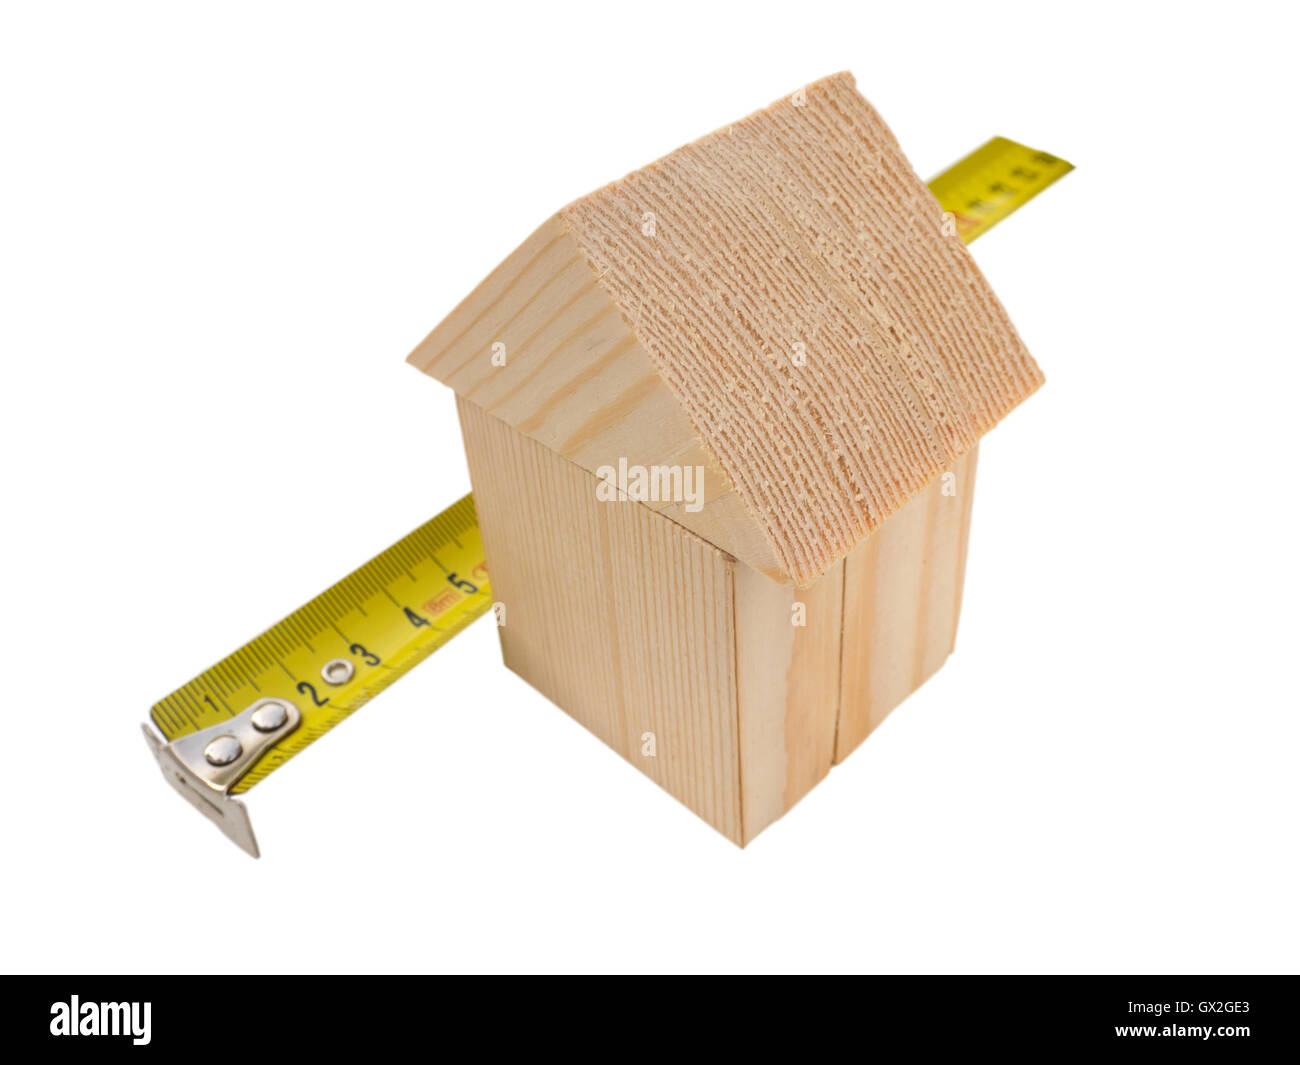 House of wooden building blocks with yellow ruler isolated on white - Stock Image